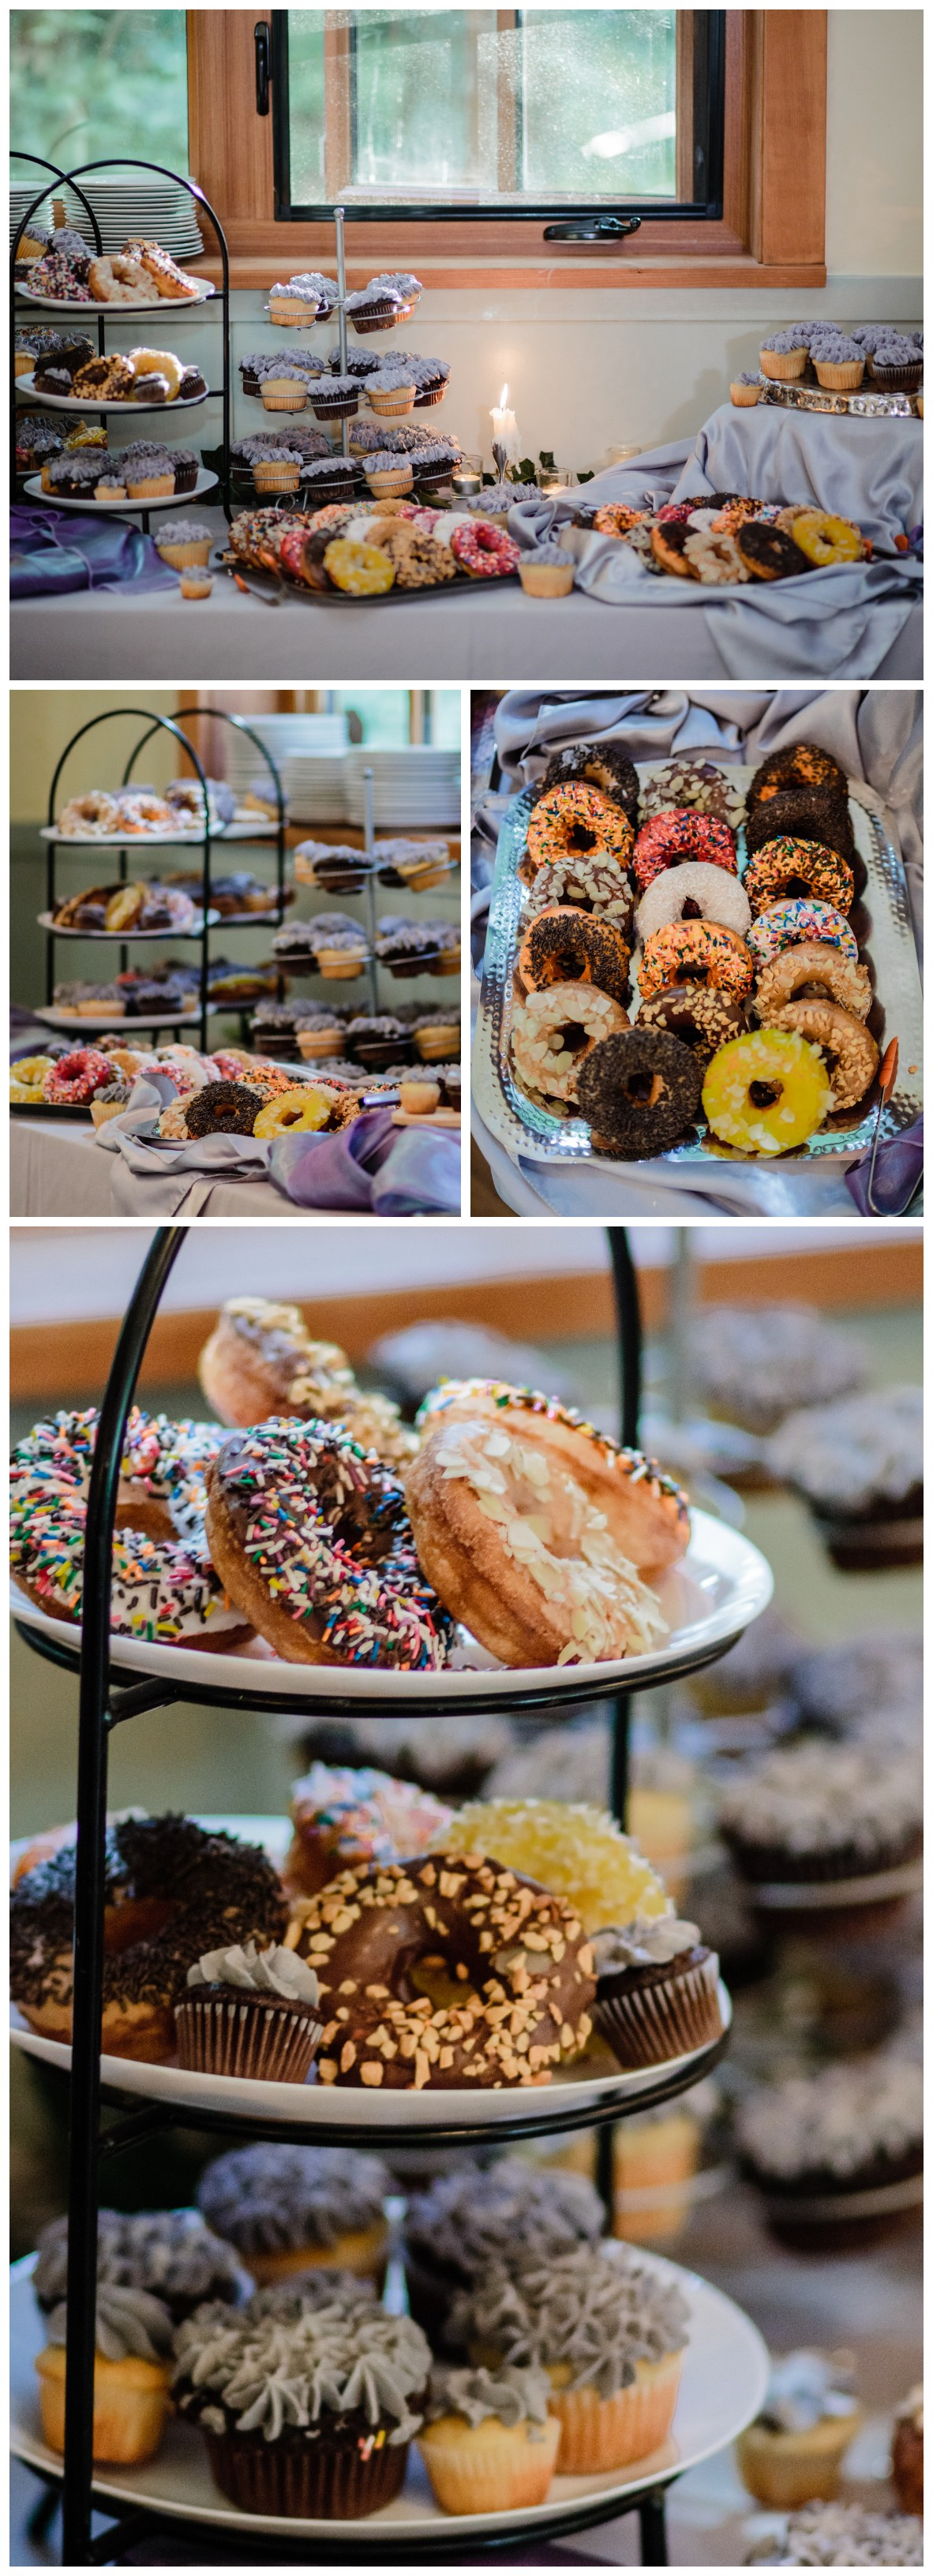 donut dessert bar at rustic wedding before wedding reception at Kwomais Hall by Kwomais Point Park in Ocean Park Surrey british columbia by best wedding photographer from Langley Mimsical Photography Christina Voorhorst style is documentary candid and fun photos